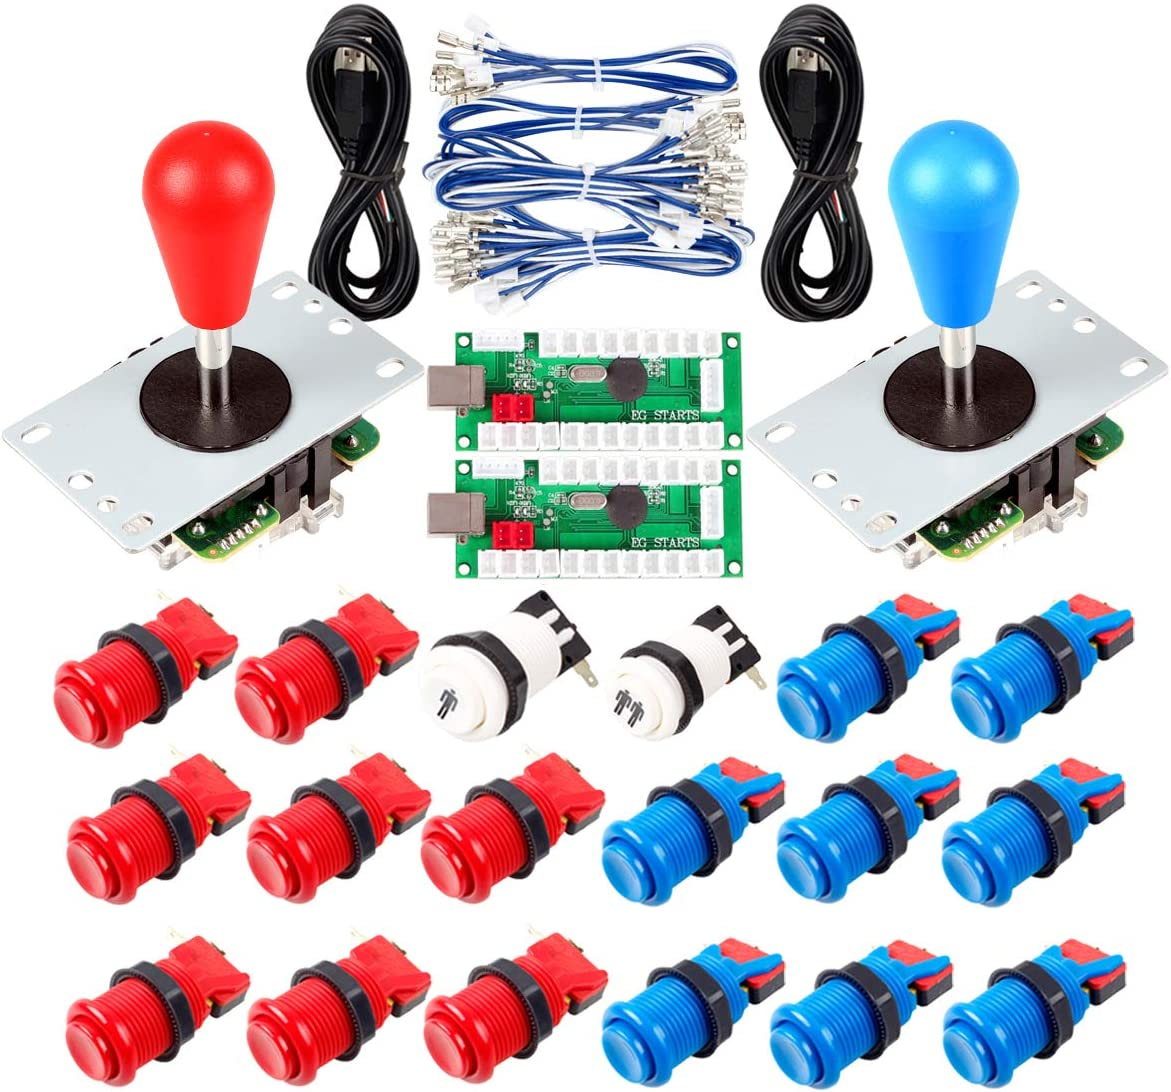 Avisiri 2 Player Arcade Joystick DIY Parts 2X USB Encoder + 2X Elliptical Joystick Hanlde + 18x American Style Arcade Buttons for PC, MAME, Raspberry Pi, Windows (Red & Blue)